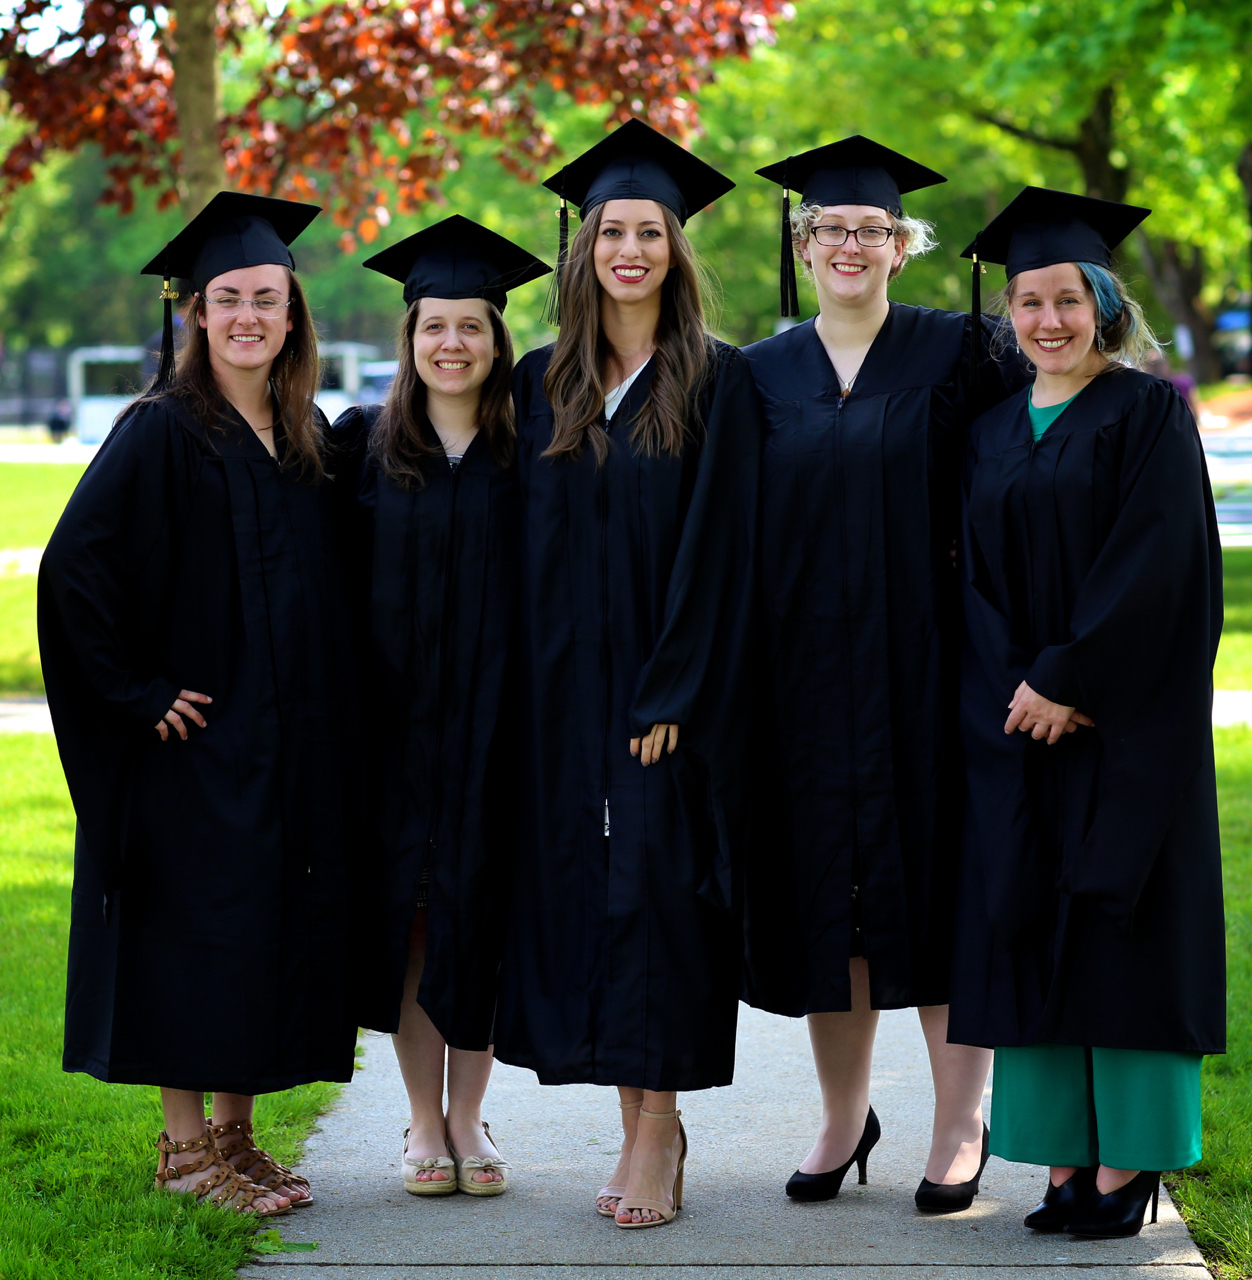 MS in Animals and Public Policy graduating students at Tufts University's Cummings School of Veterinary Medicine's 37th commencement ceremony, 2019